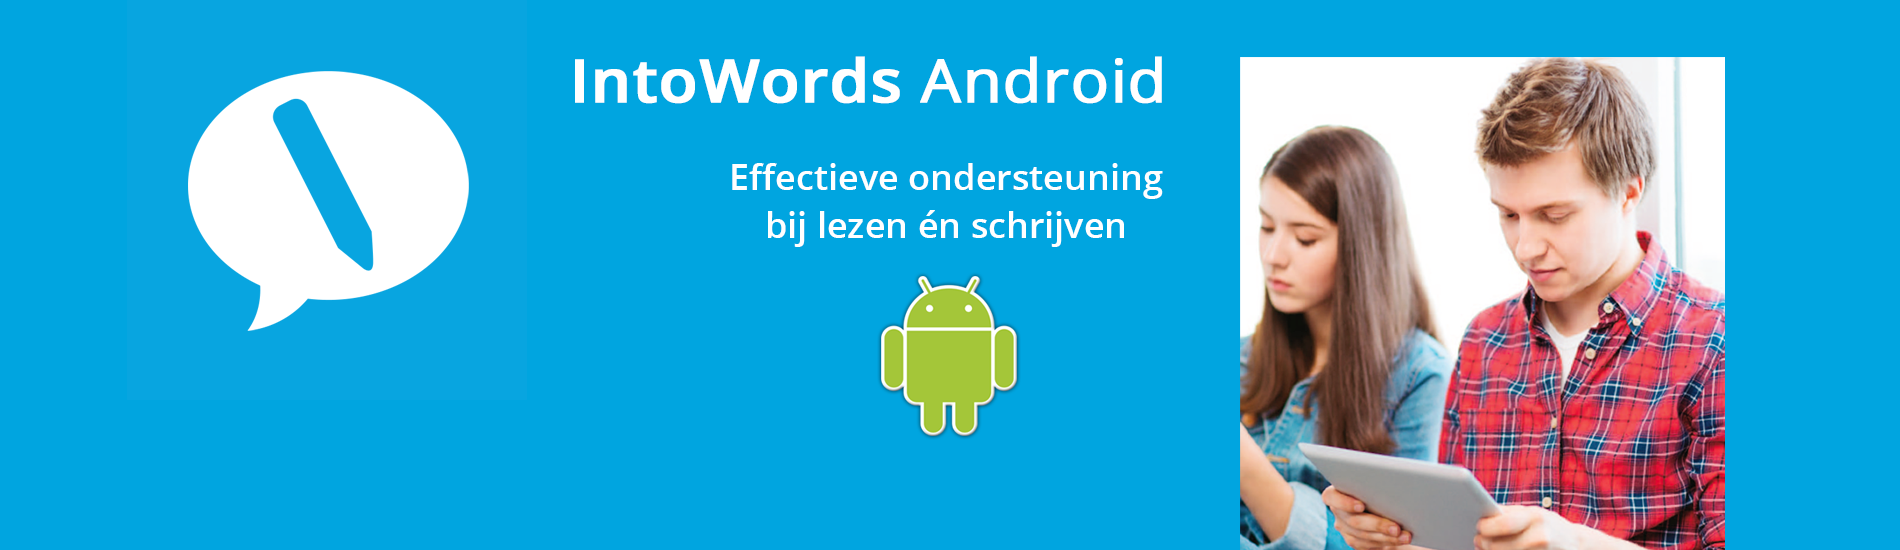 slider intowords android